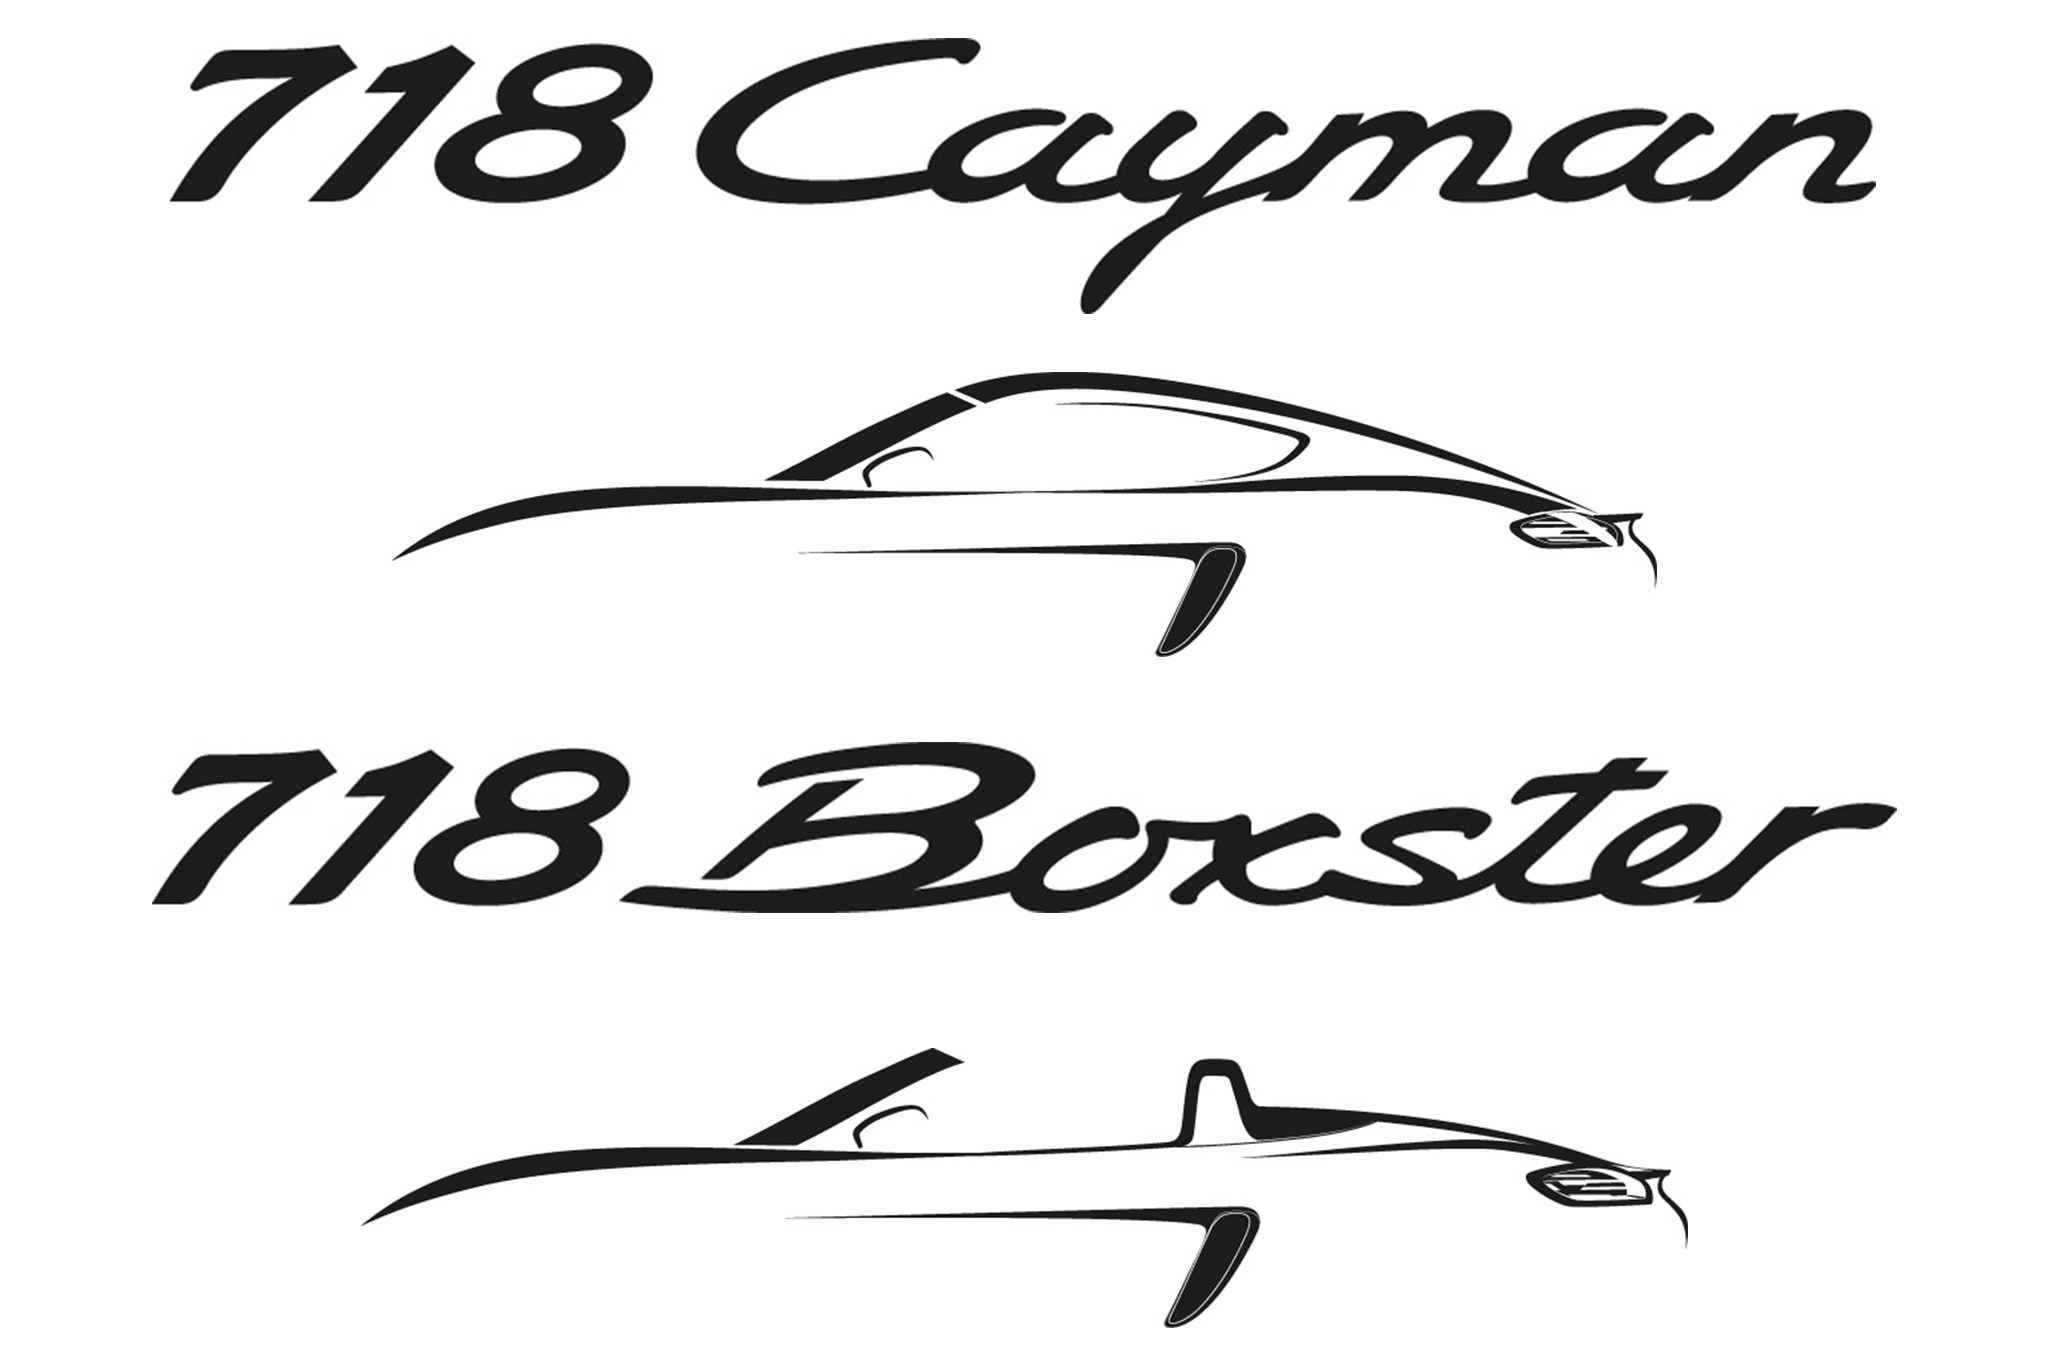 Audi Car Logo Wallpapers Porsche Boxster Cayman To Be Renamed 718 Go Four